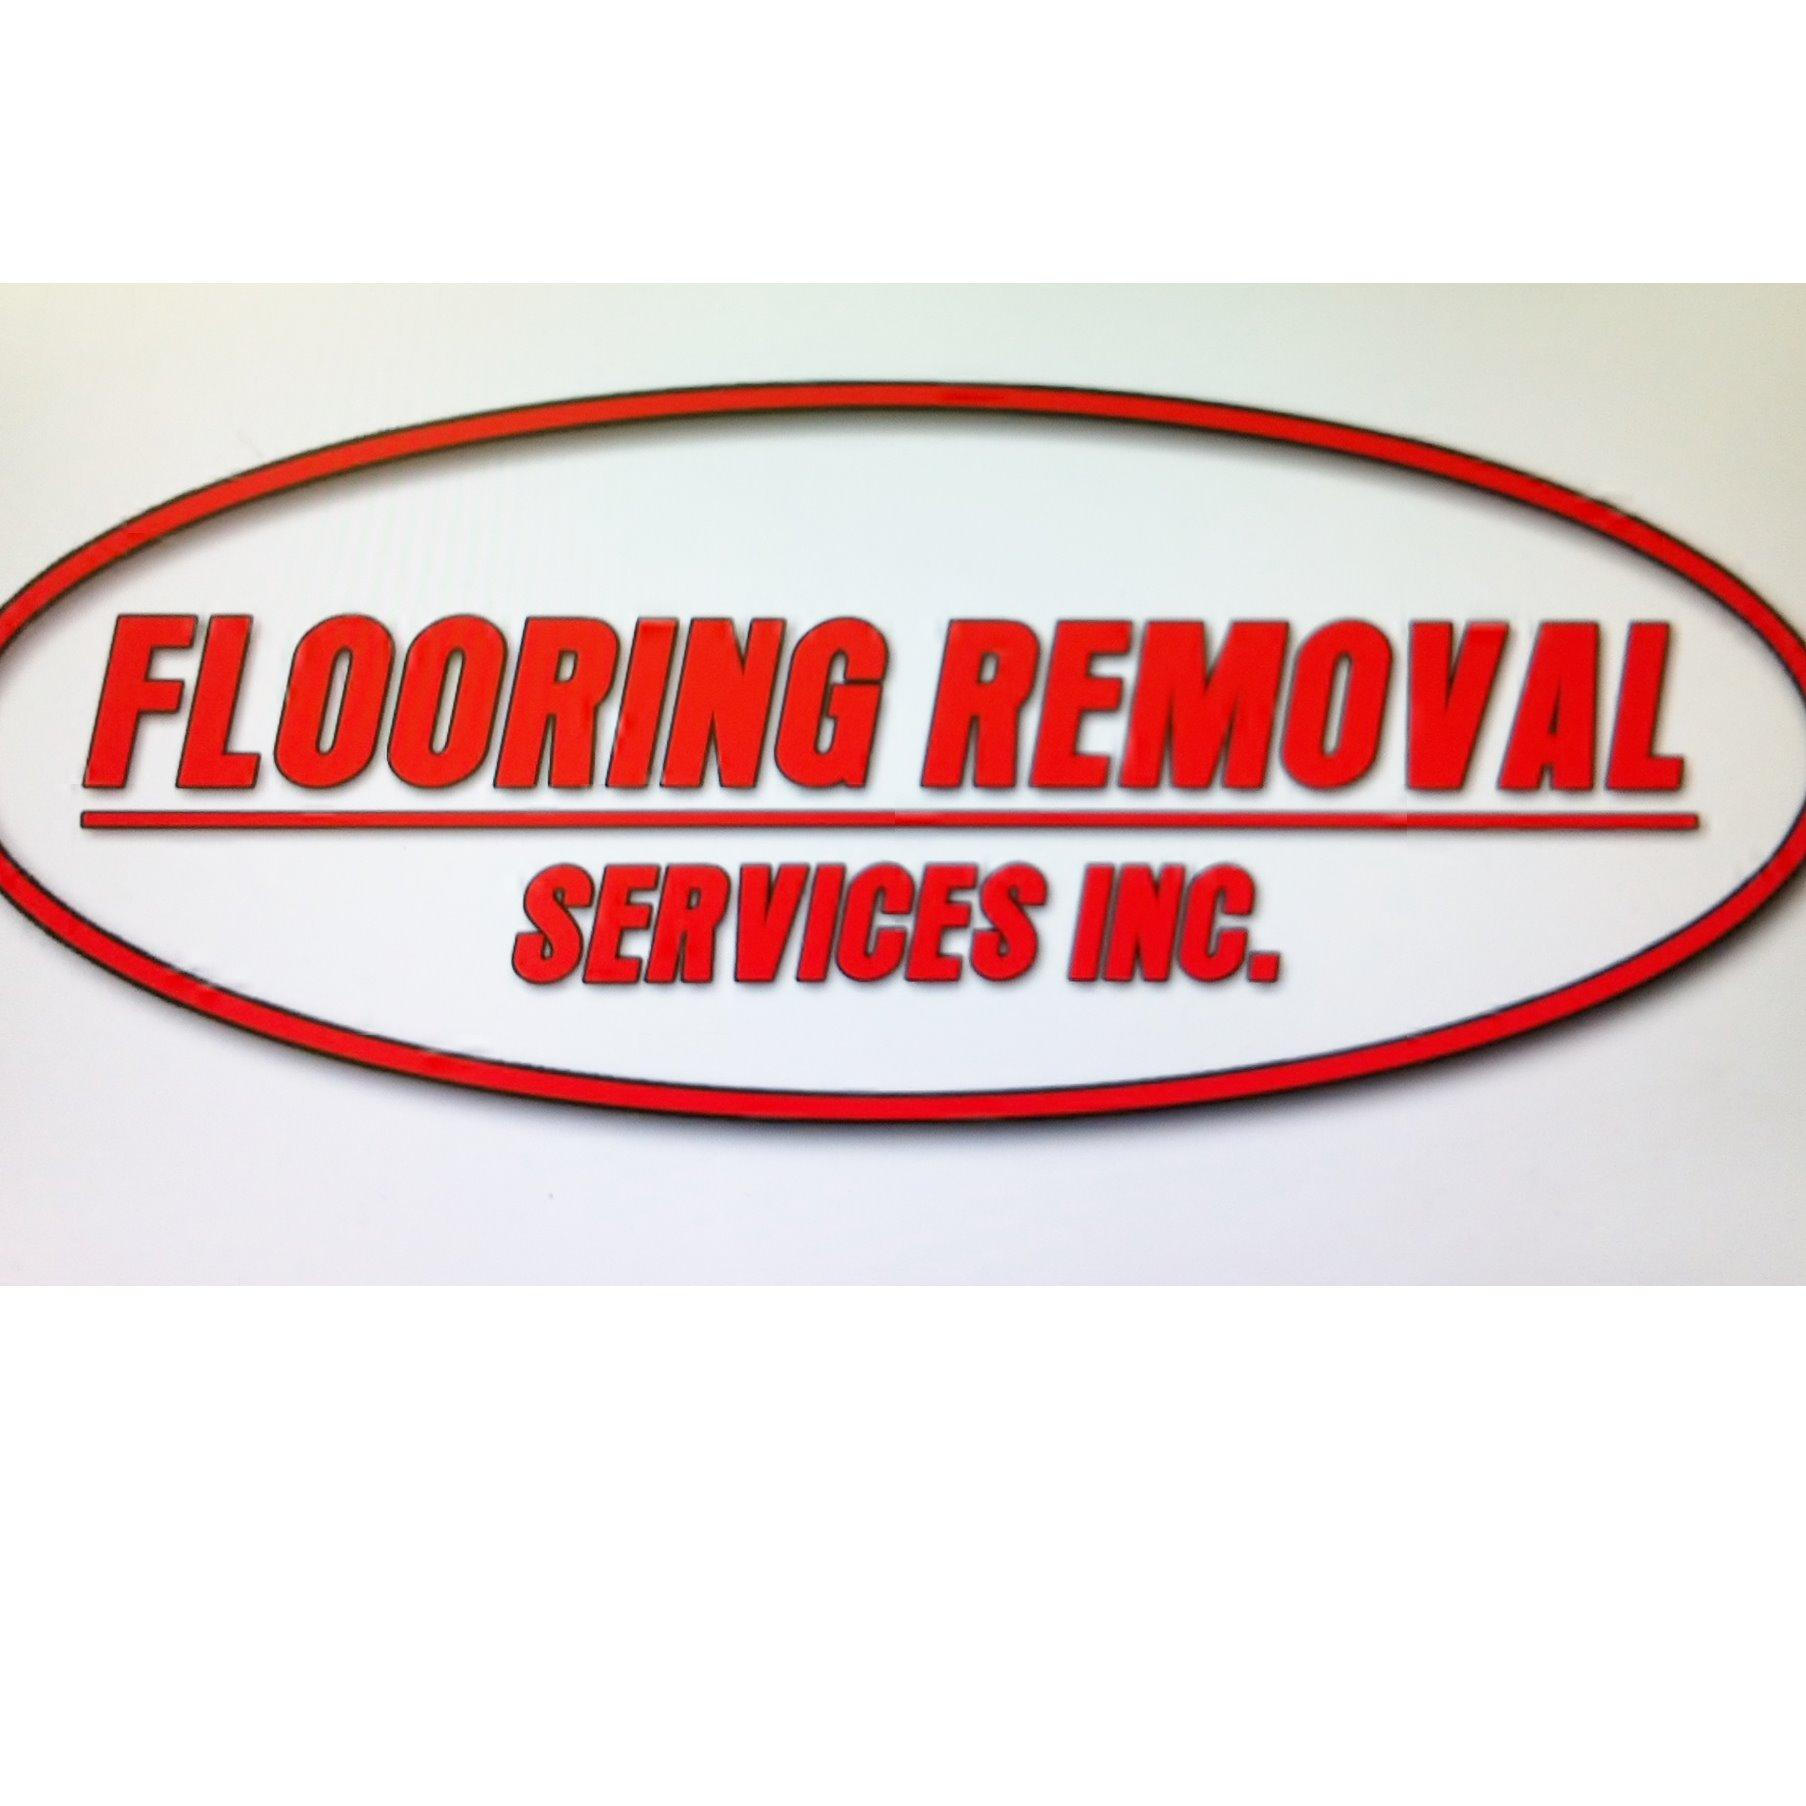 Flooring removal services 4 photos remodeling contractors pompano beach fl reviews Badcock home furniture more pompano beach fl